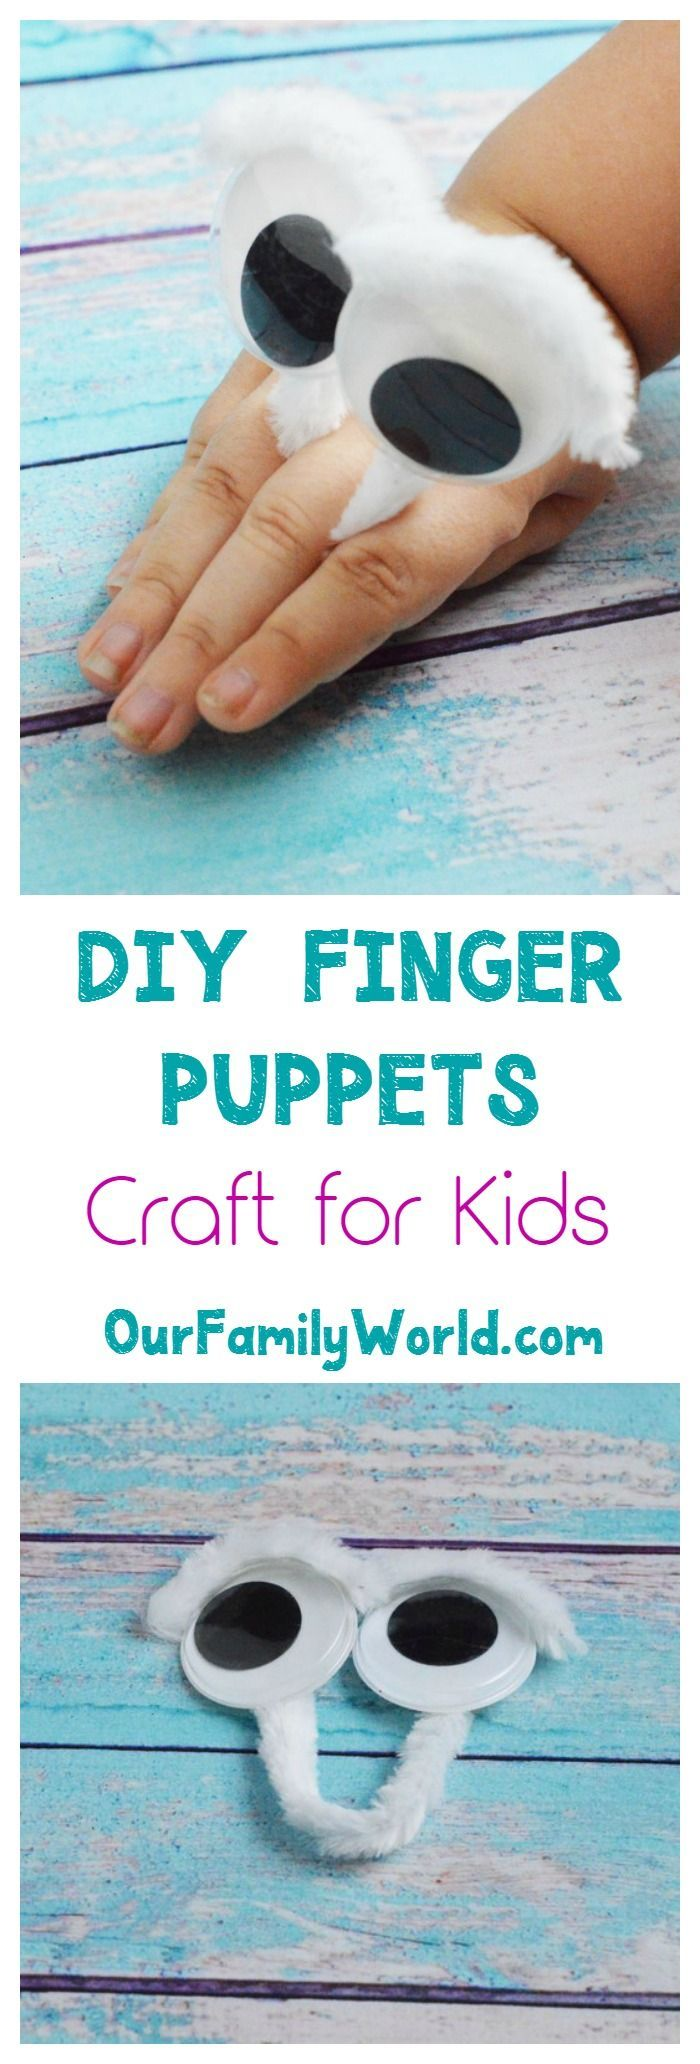 """This DIY Googly Eye Finger Puppet craft for kids isn't just a fun rainy day craft idea, it's also a great parenting tool to help your kids deal with emotions. Kids are often more willing to discuss their feelings through a """"proxy"""" than directly. Check out how easy it is to make this cute kids' craft, then read our parenting tips for how to use it to talk about anger, sadness and other feelings."""